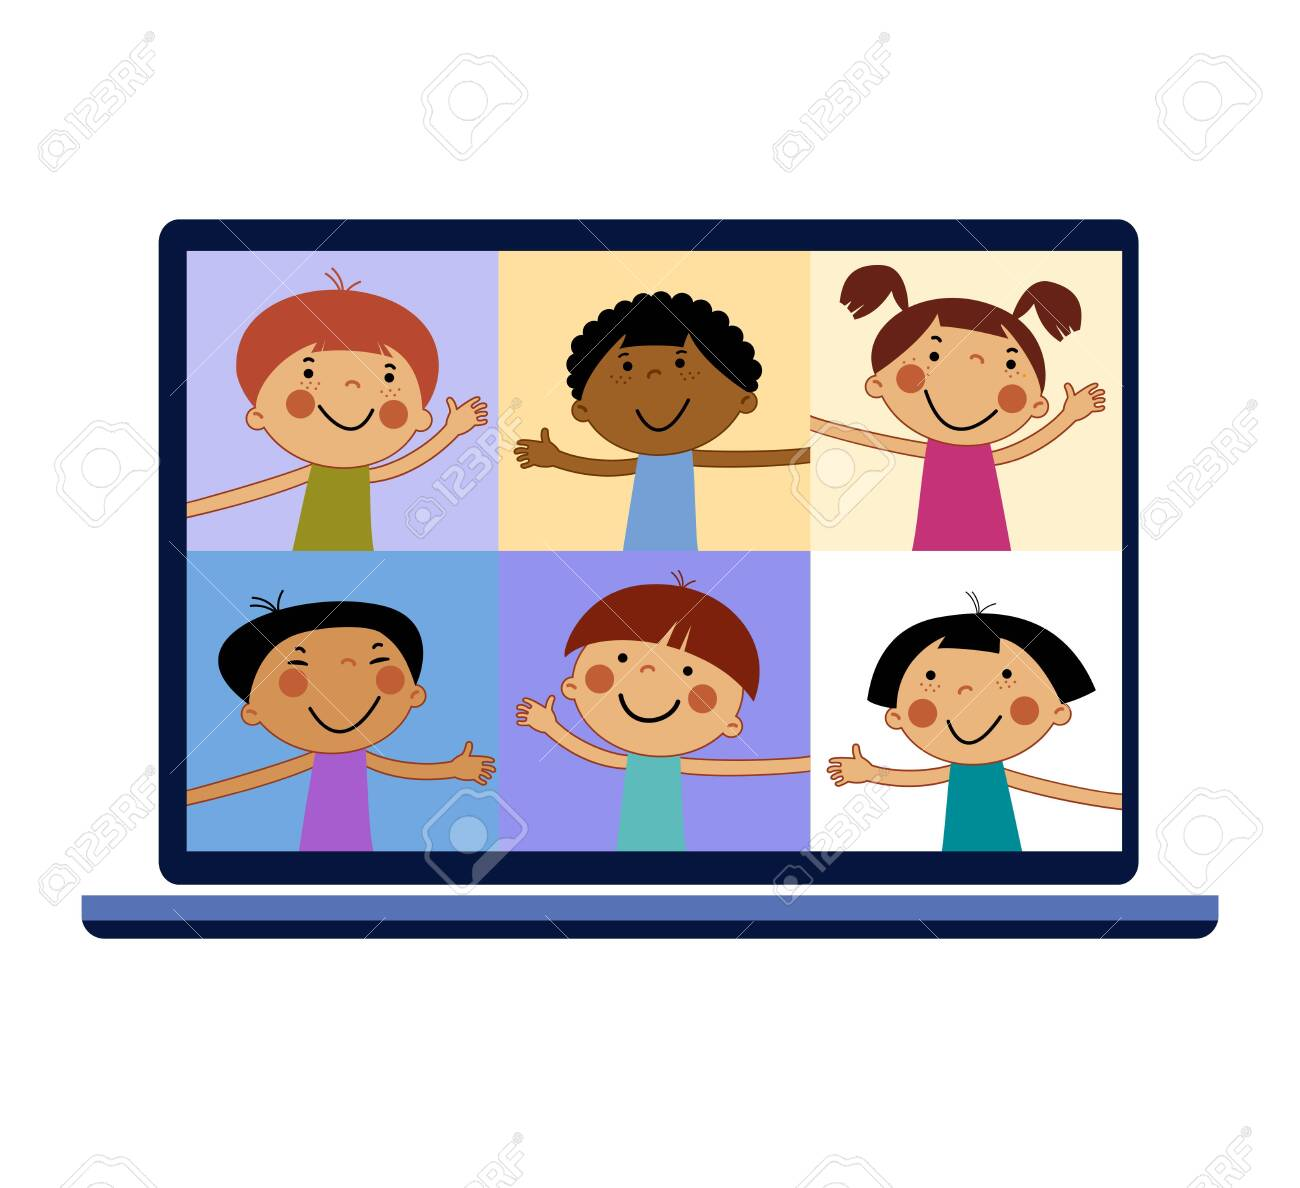 Chat With Child Online Collective Virtual Meeting And Group Video Conferencing Remote Work Concept Royalty Free Cliparts Vectors And Stock Illustration Image 147453585